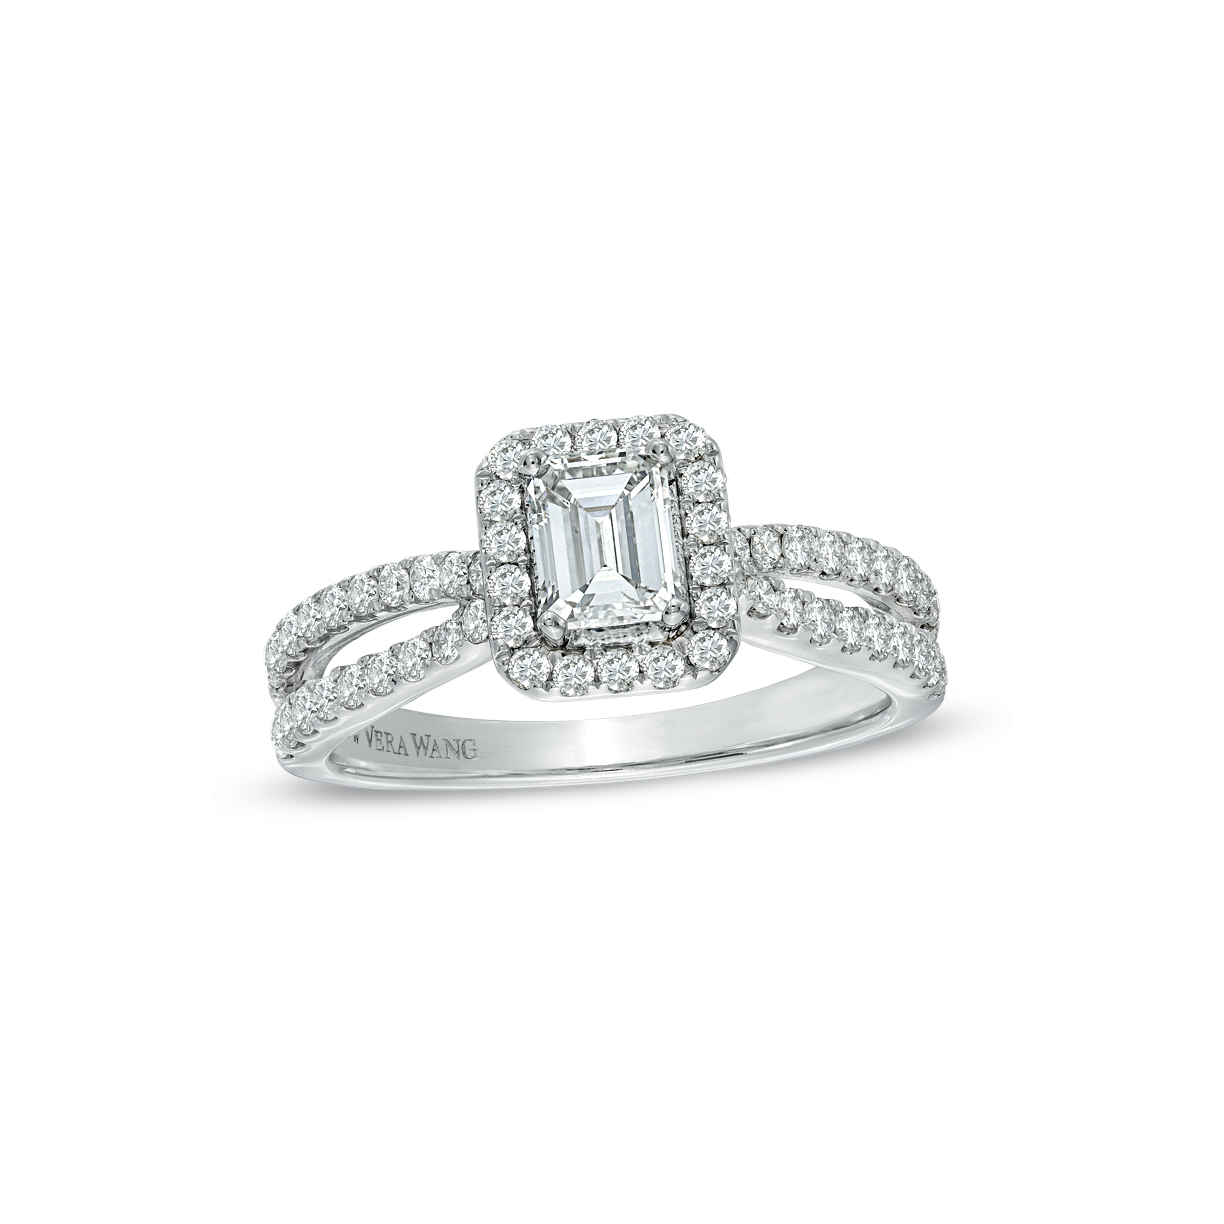 Vera Wang Love Collection 1 T.C.W. Emerald-Cut Diamond Split Shank Ring in 14K White Gold